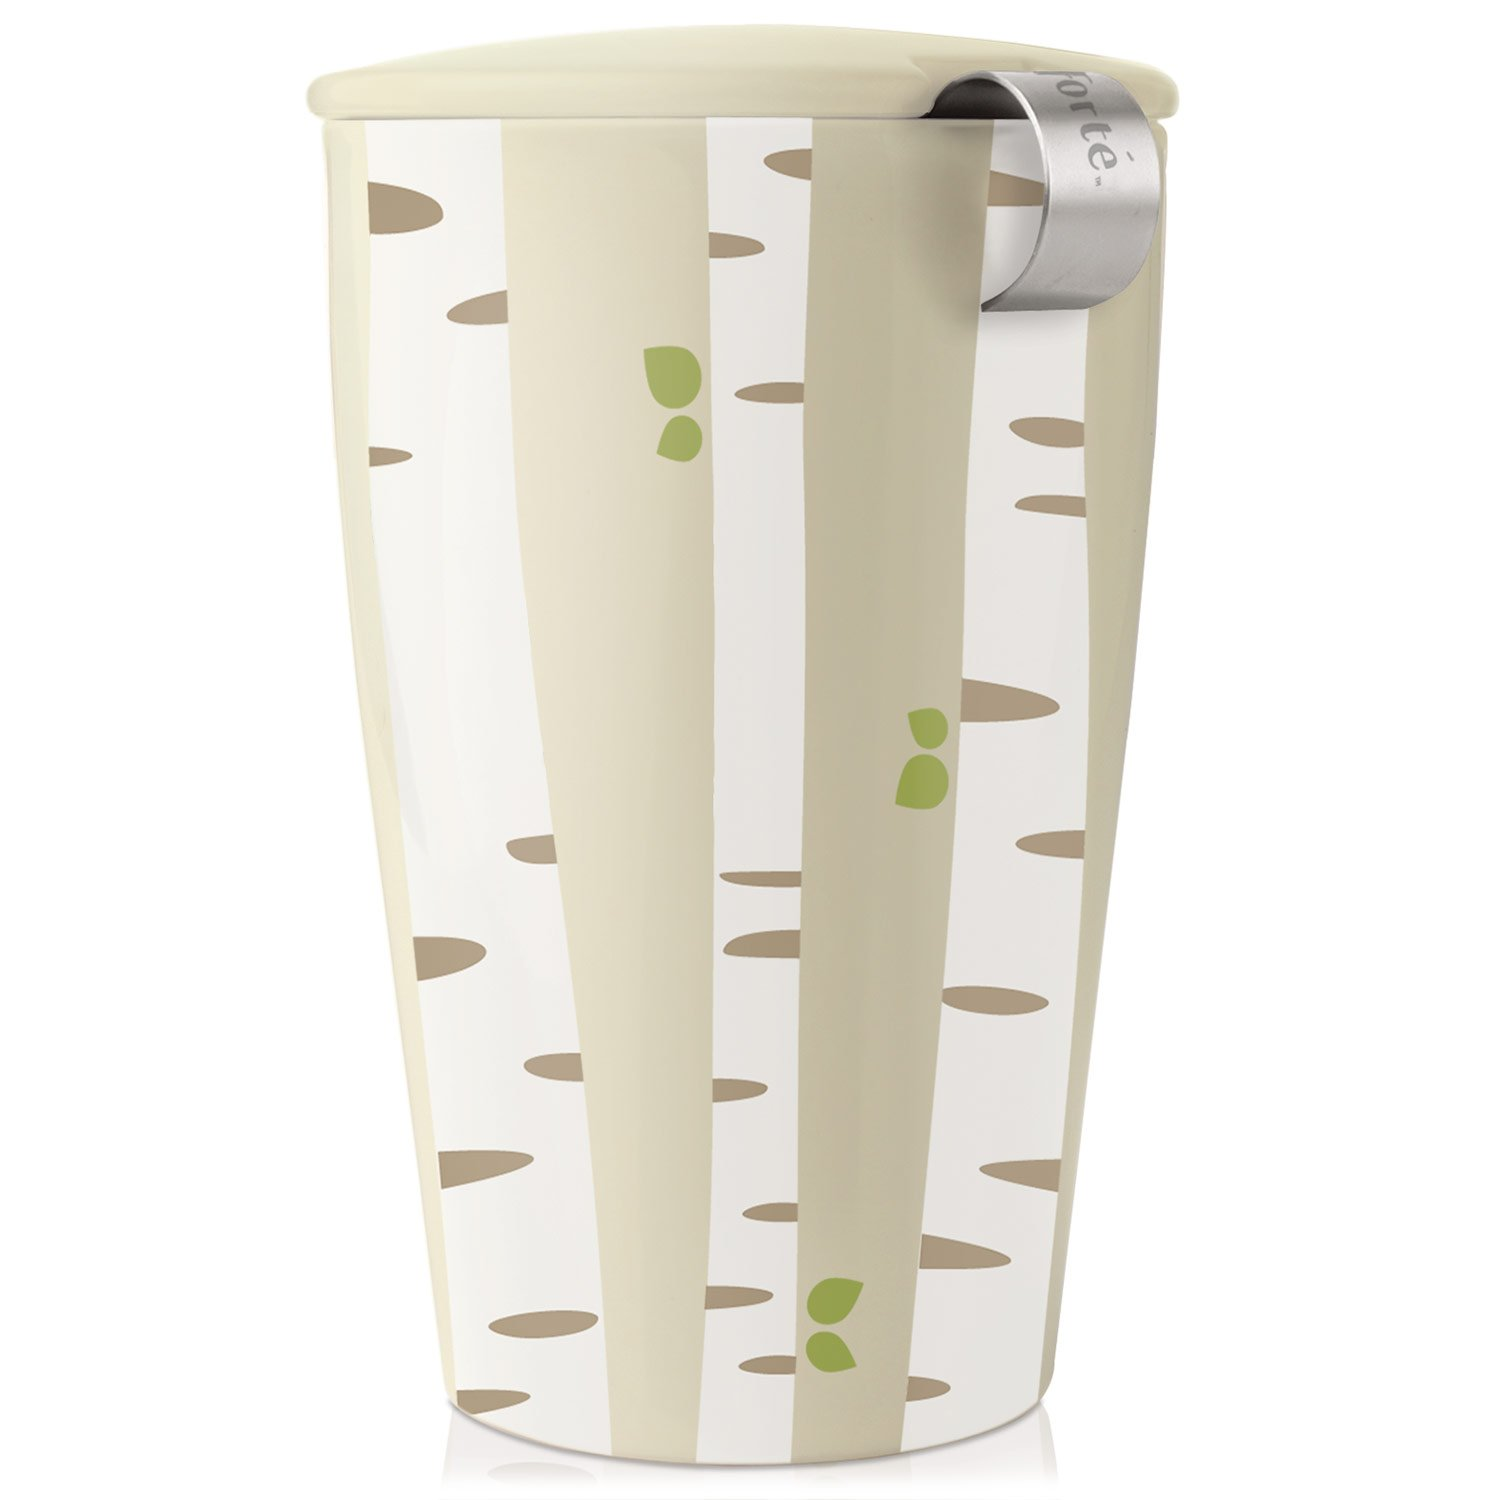 Tea Forté KATI CUP Ceramic Tea Infuser Cup with Infuser Basket and Lid for Steeping, Birch Forest